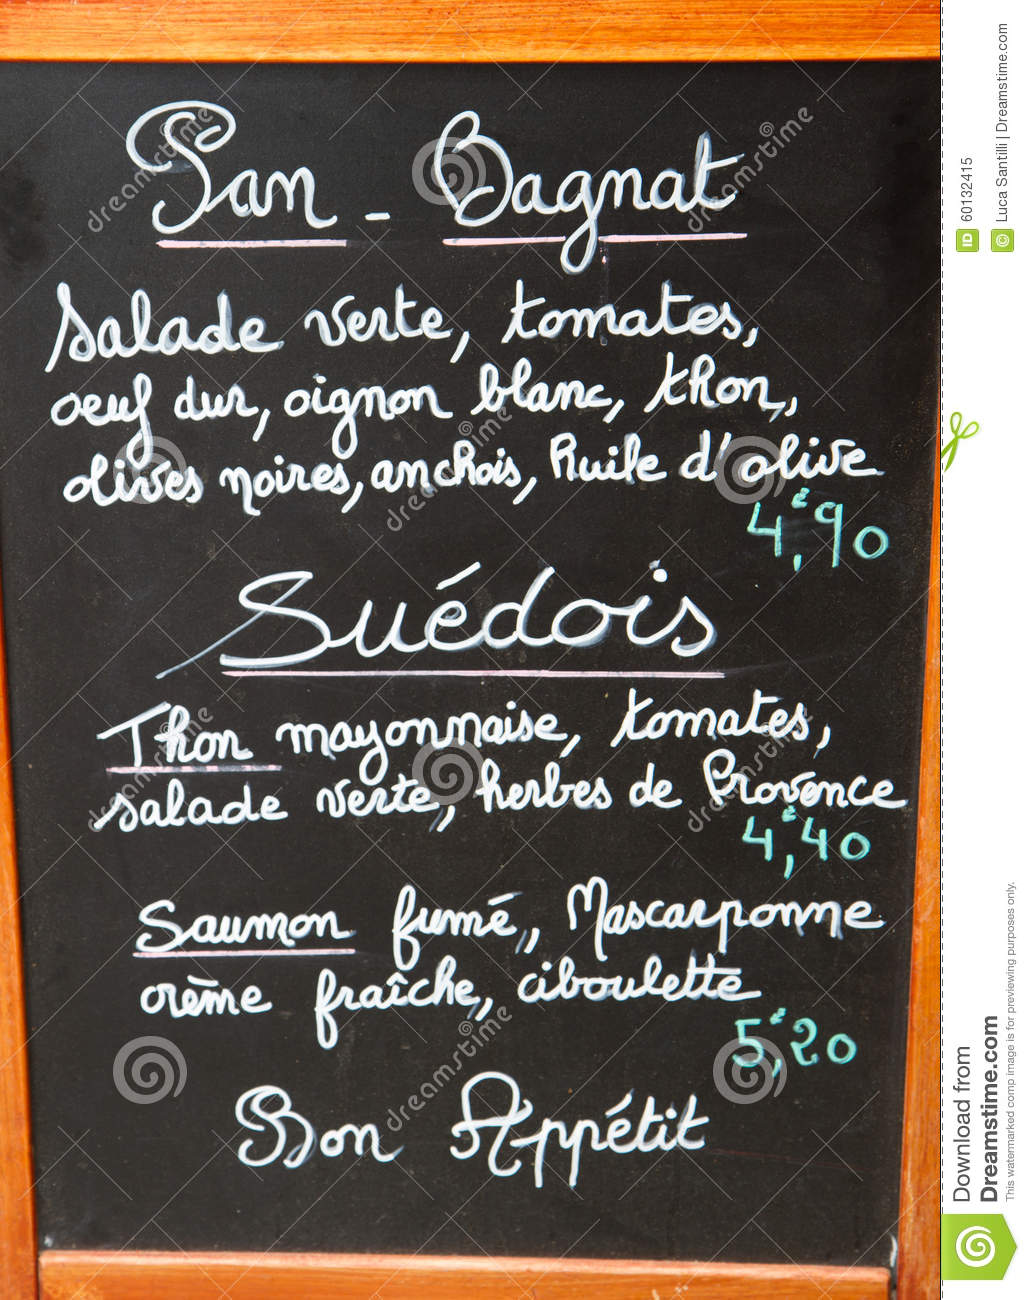 Times and Dates in Spanish